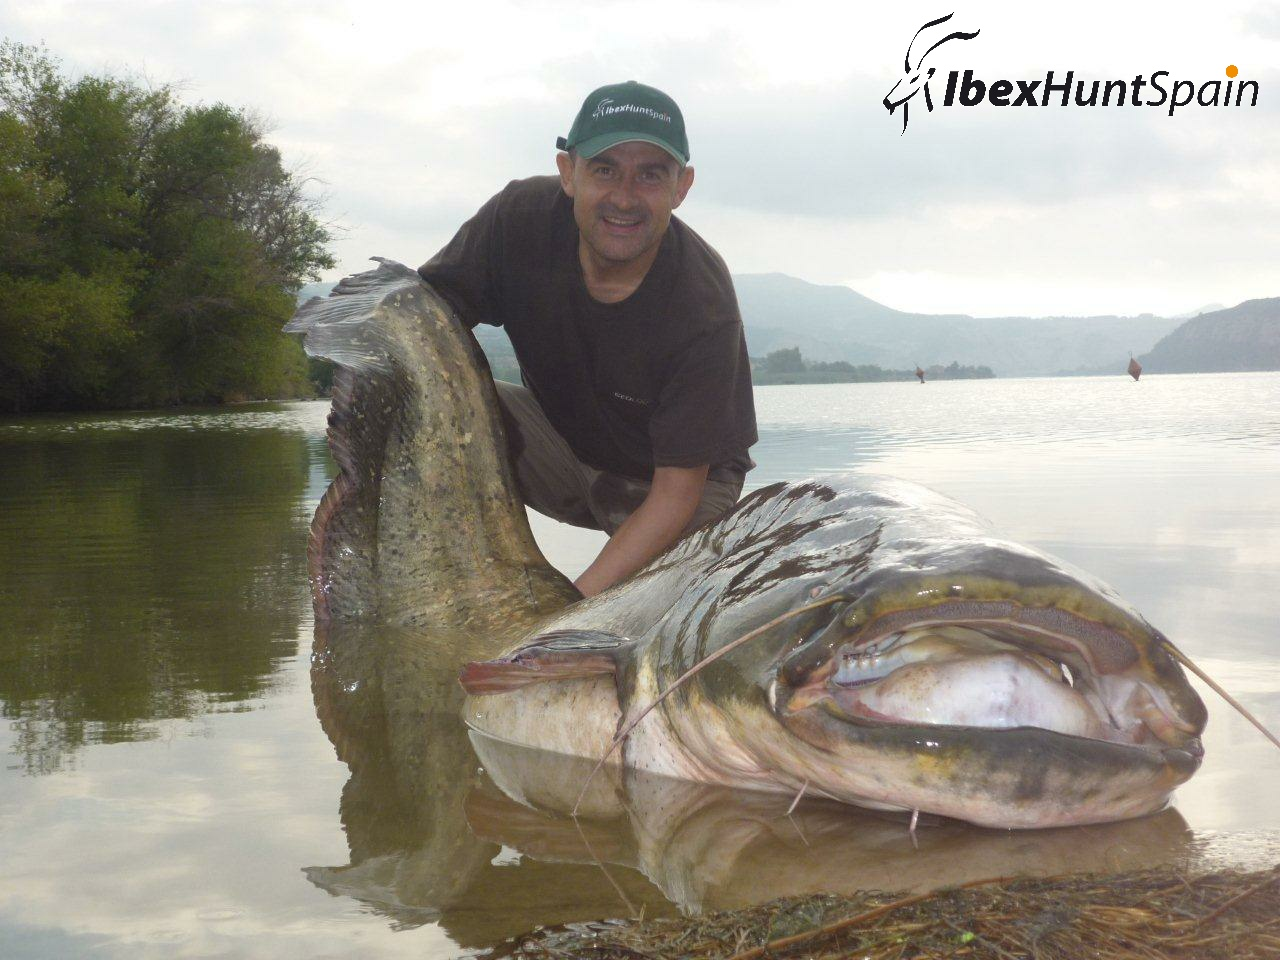 hunting ibex in spain fishing catfish in spain fishing